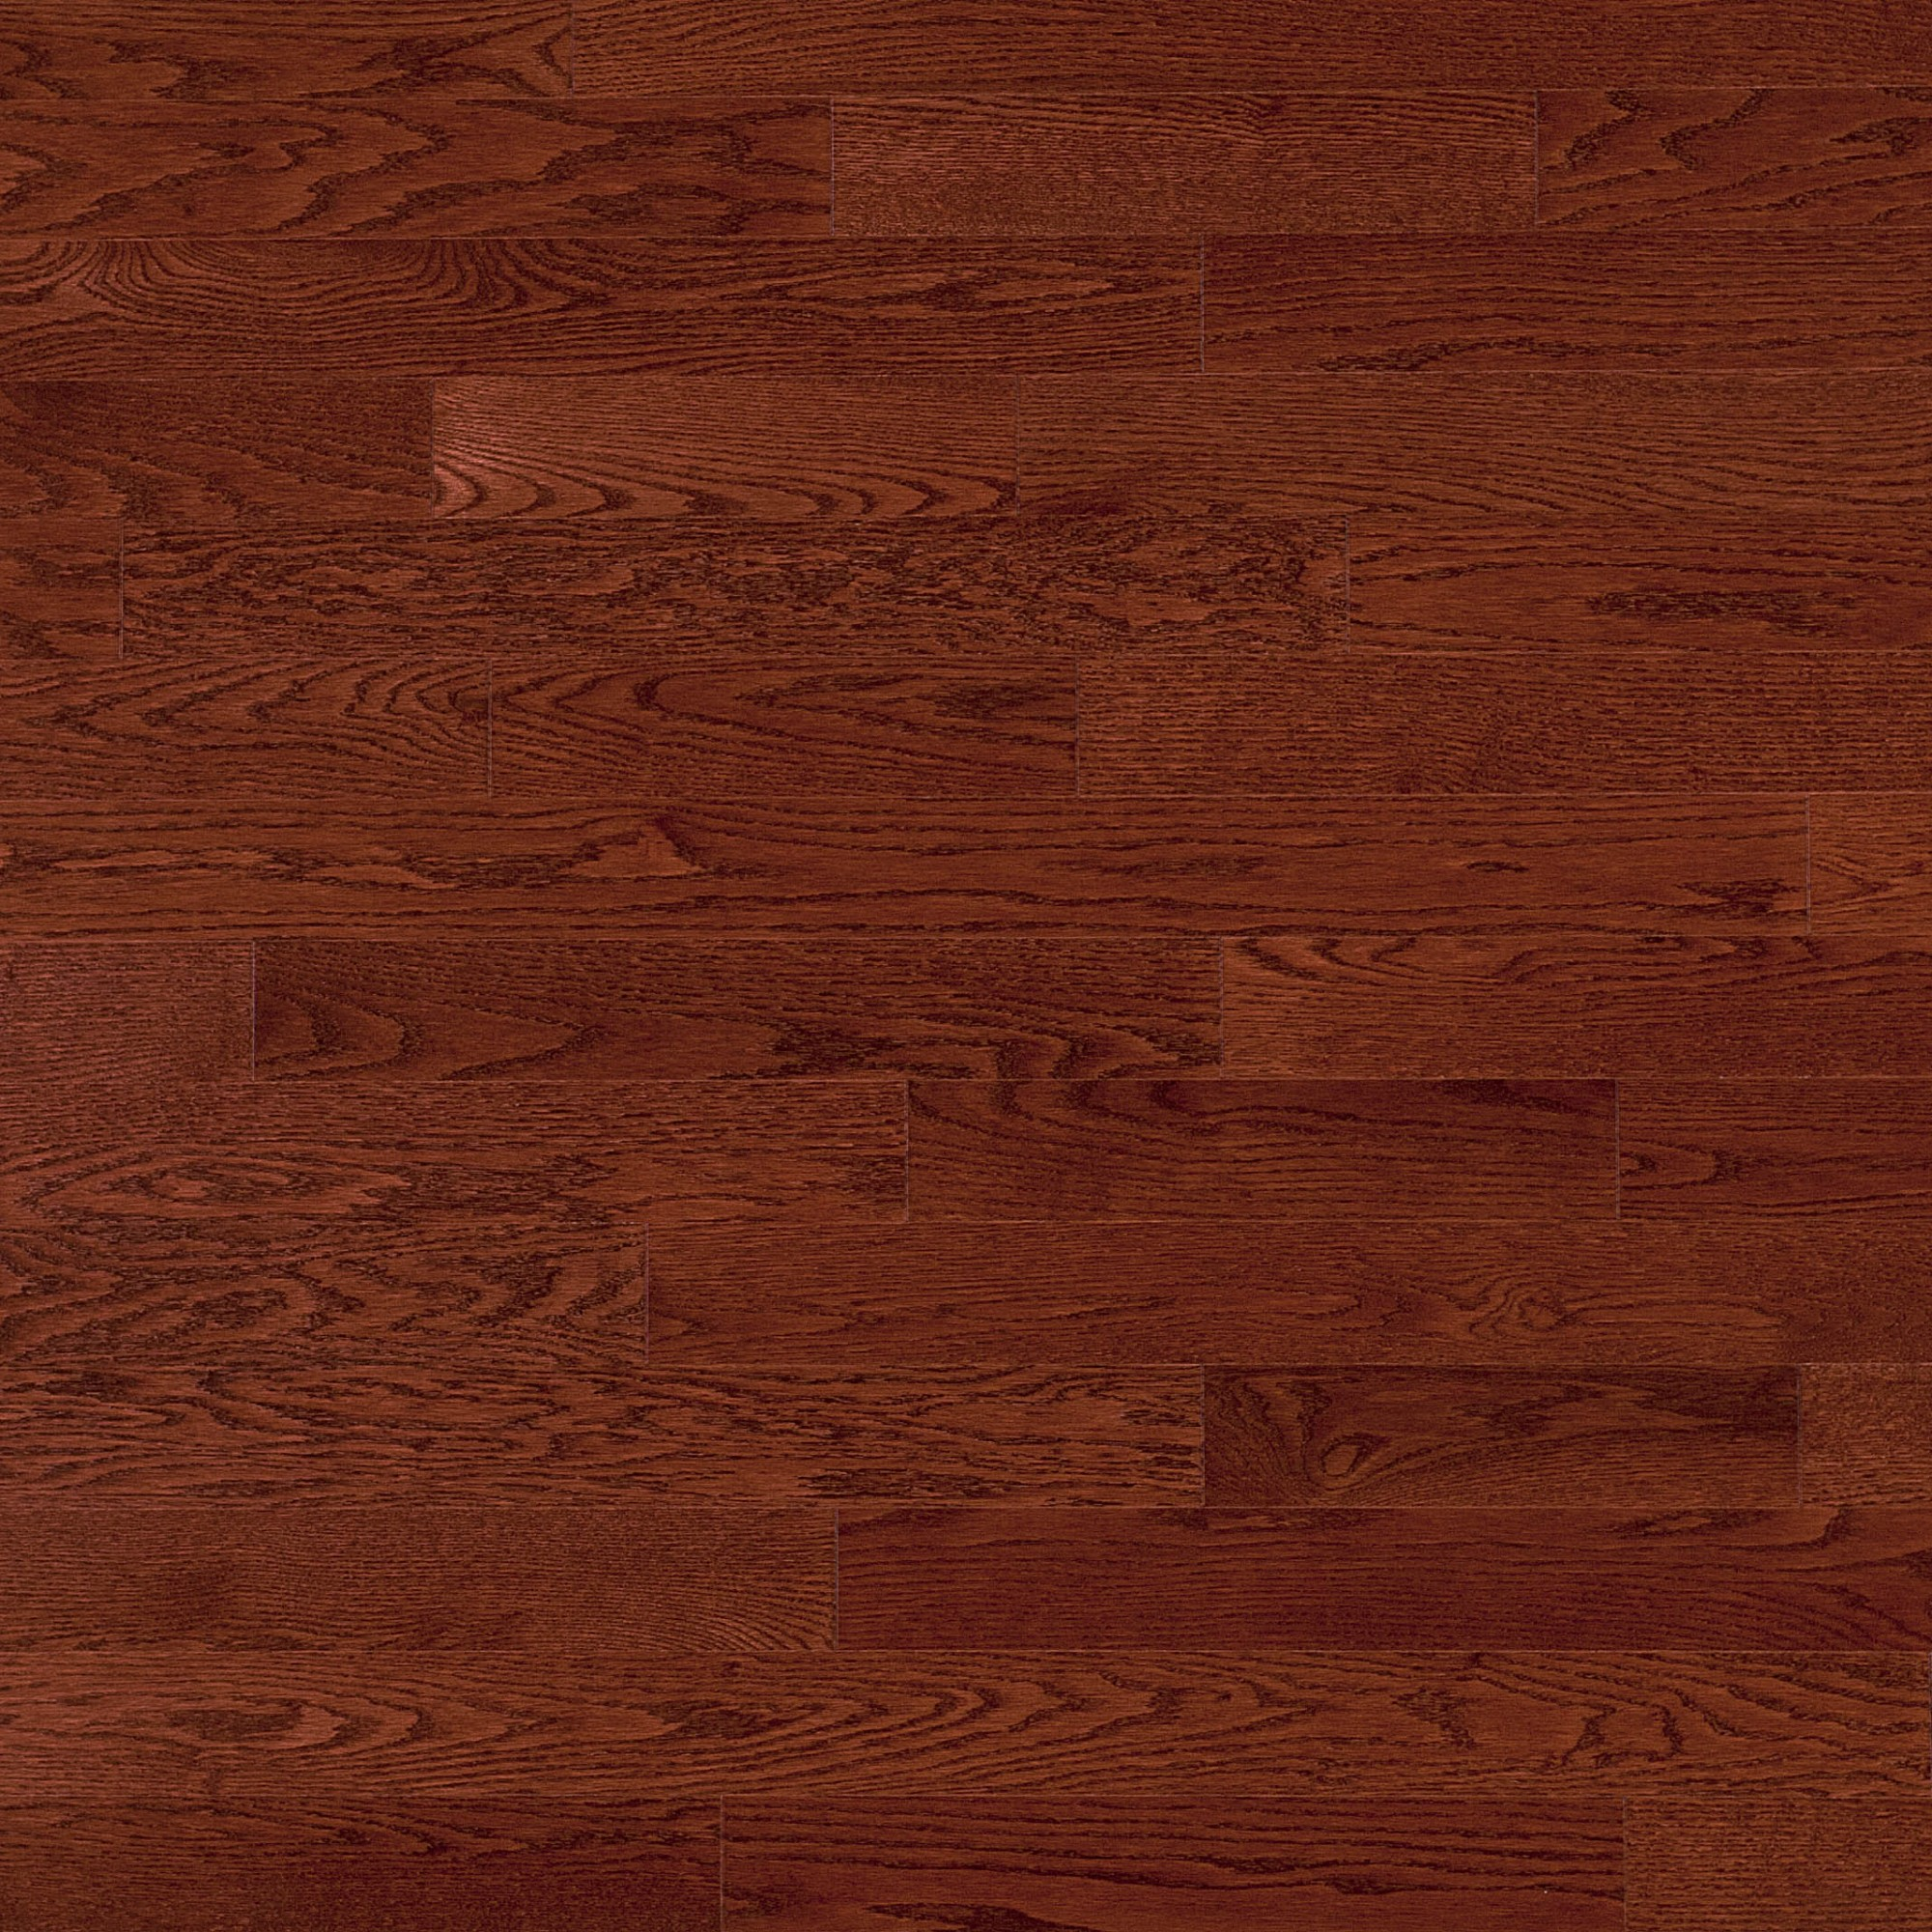 Red oak canyon mirage hardwood floors call for special for Mirage hardwood flooring